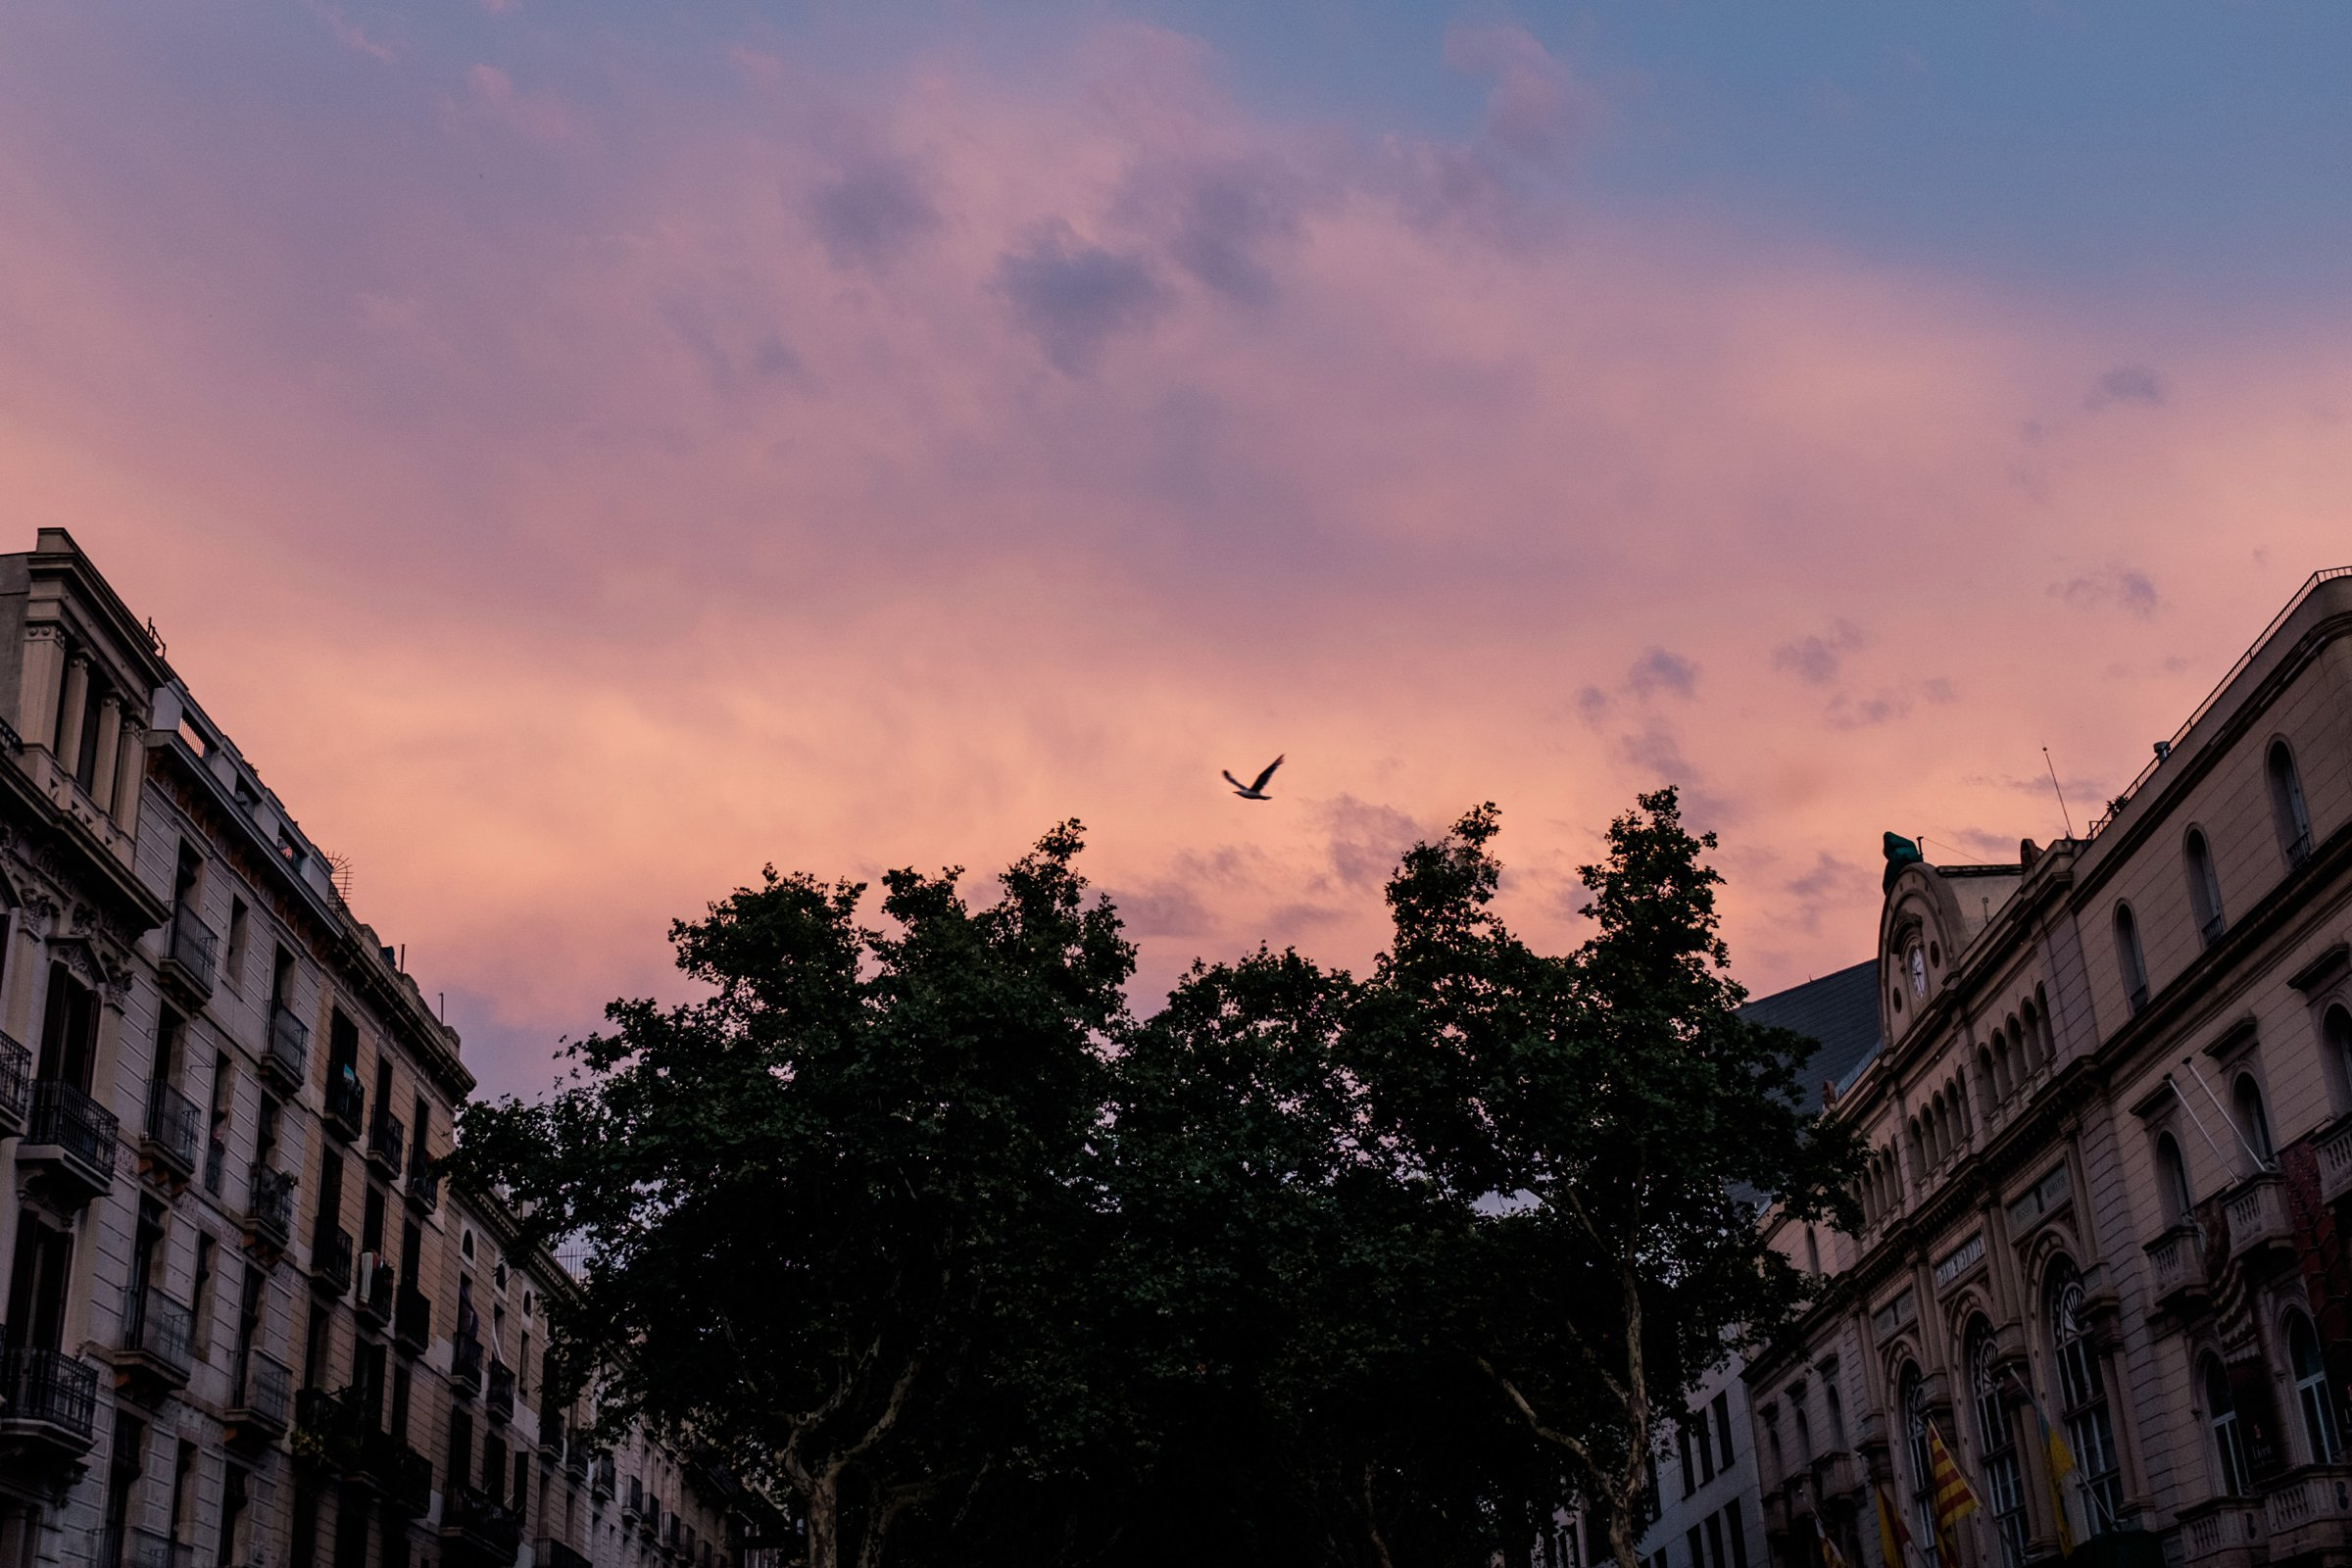 While the mid day heat brought uncomfortability, the skies were breathtaking. La Rambla, with it's central pedestrian path, was bustling with activity day and night.